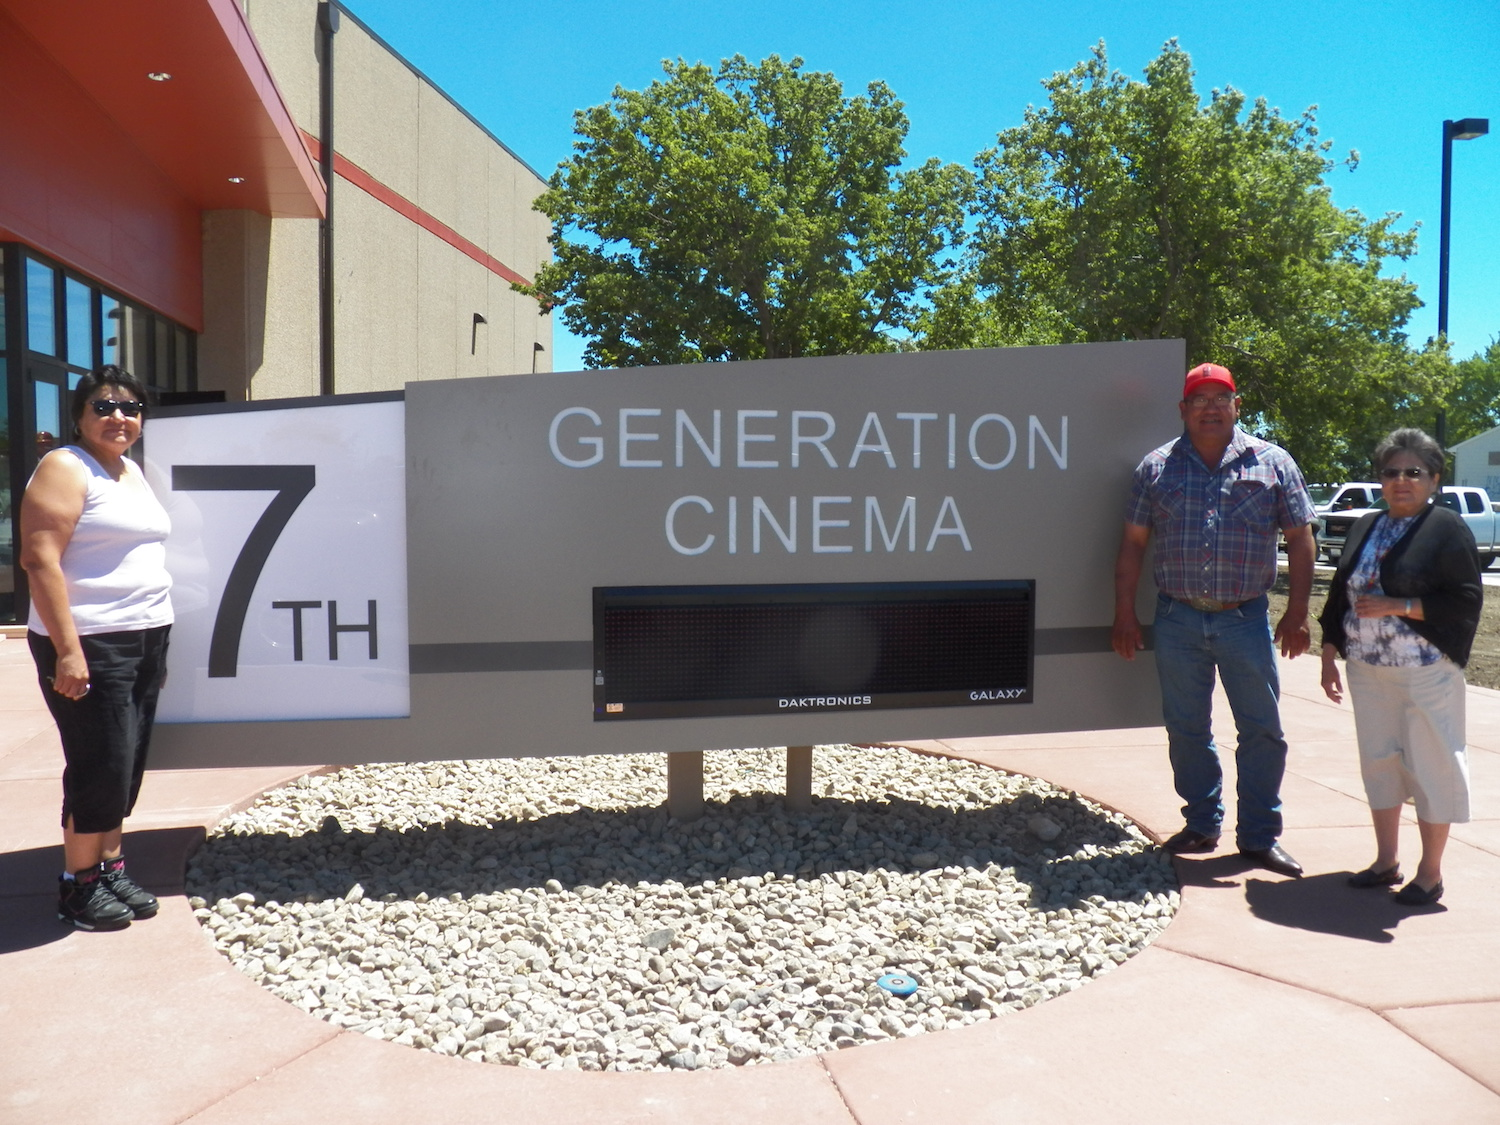 Cheyenne River Sioux Tribe nears completion of long-awaited movie theater